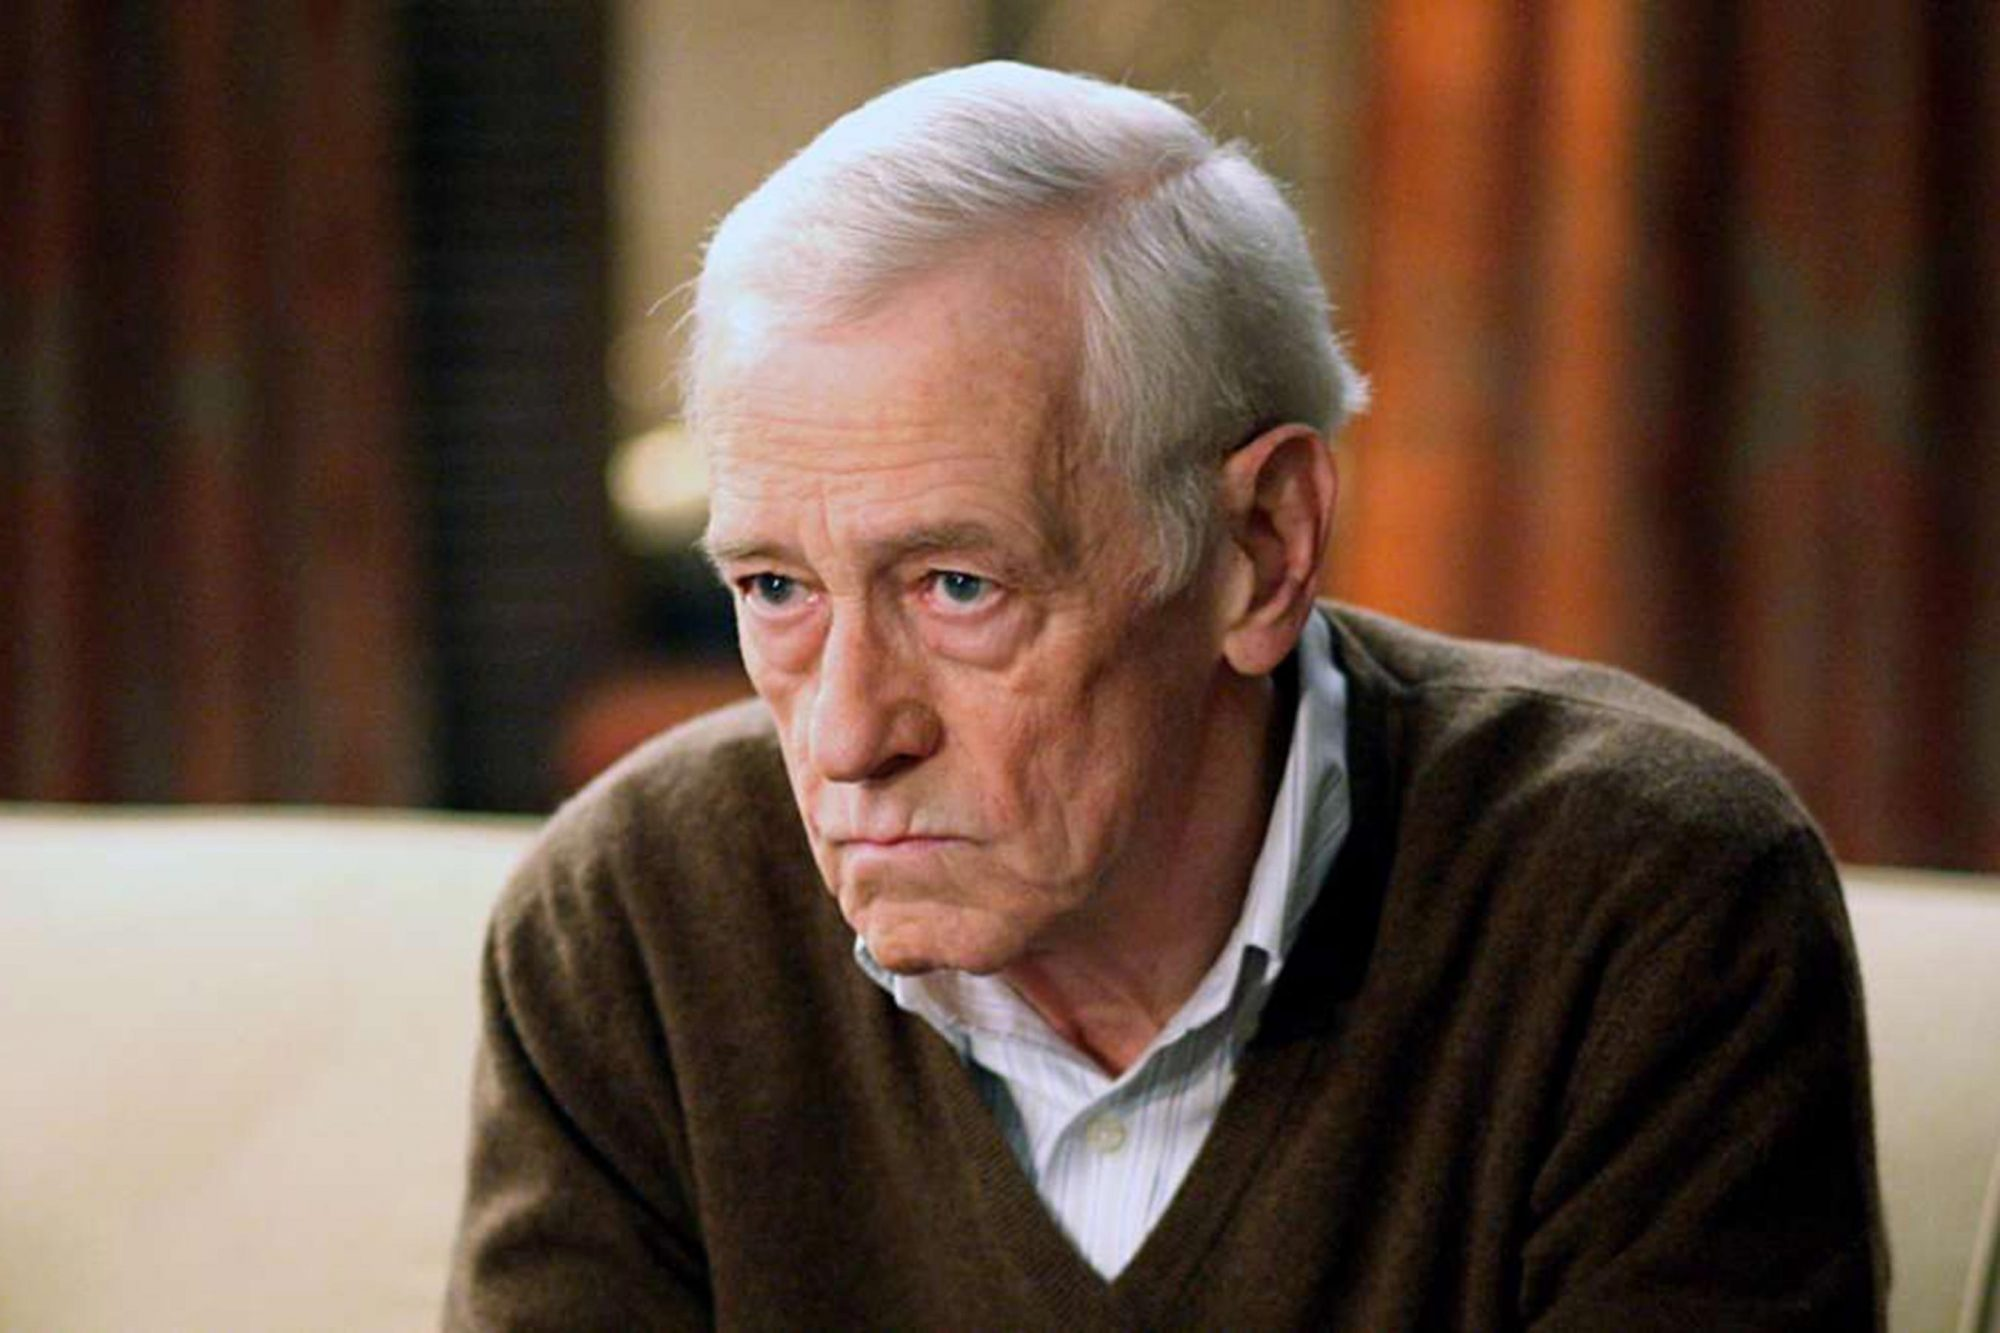 IN TREATMENT -- Pictured: John Mahoney CR: HBO